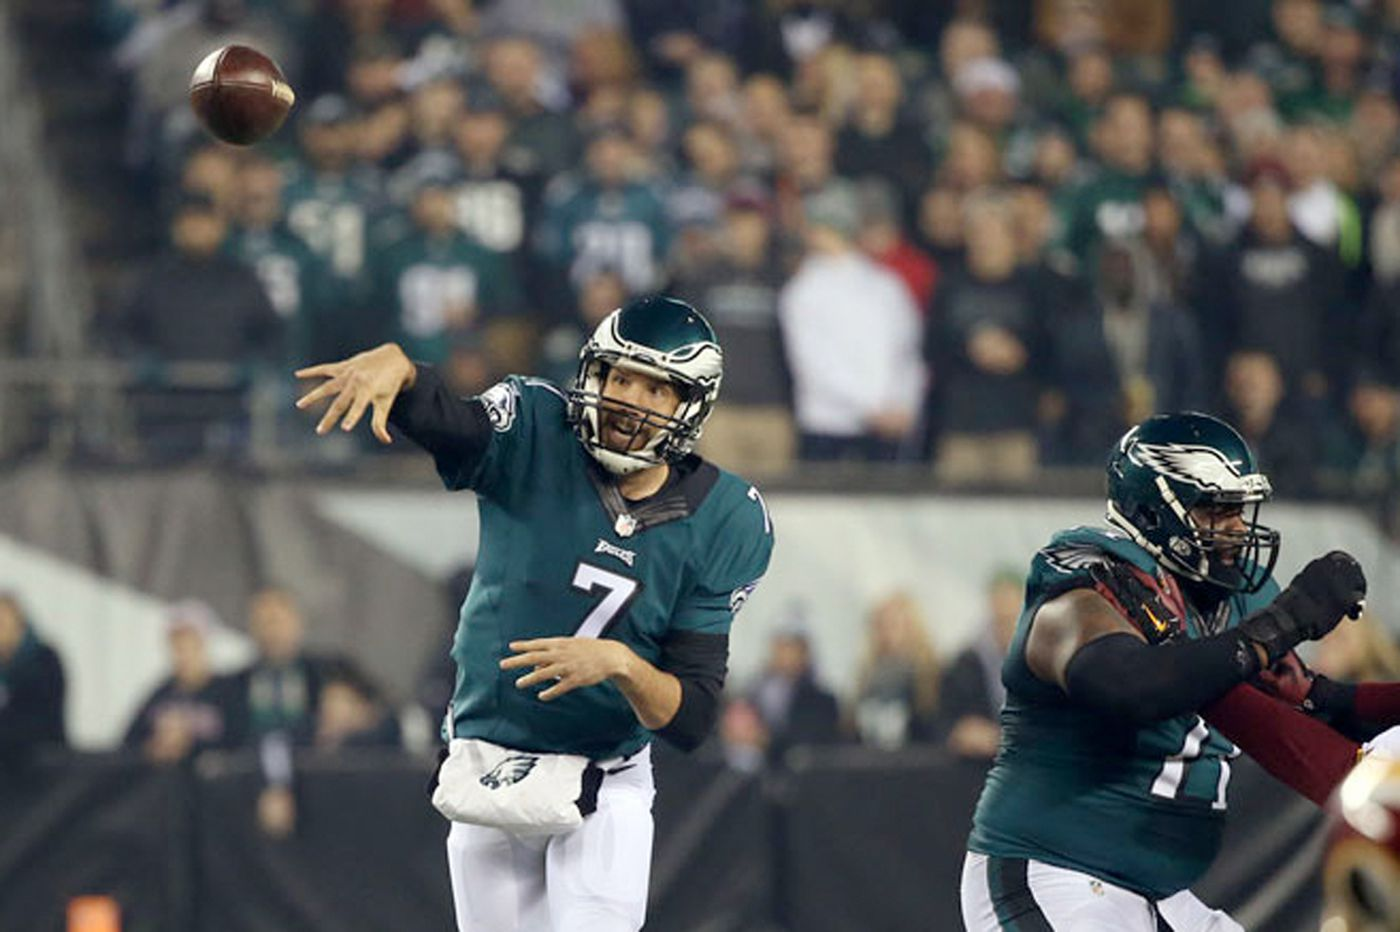 Bradford shows Eagles he's worth keeping